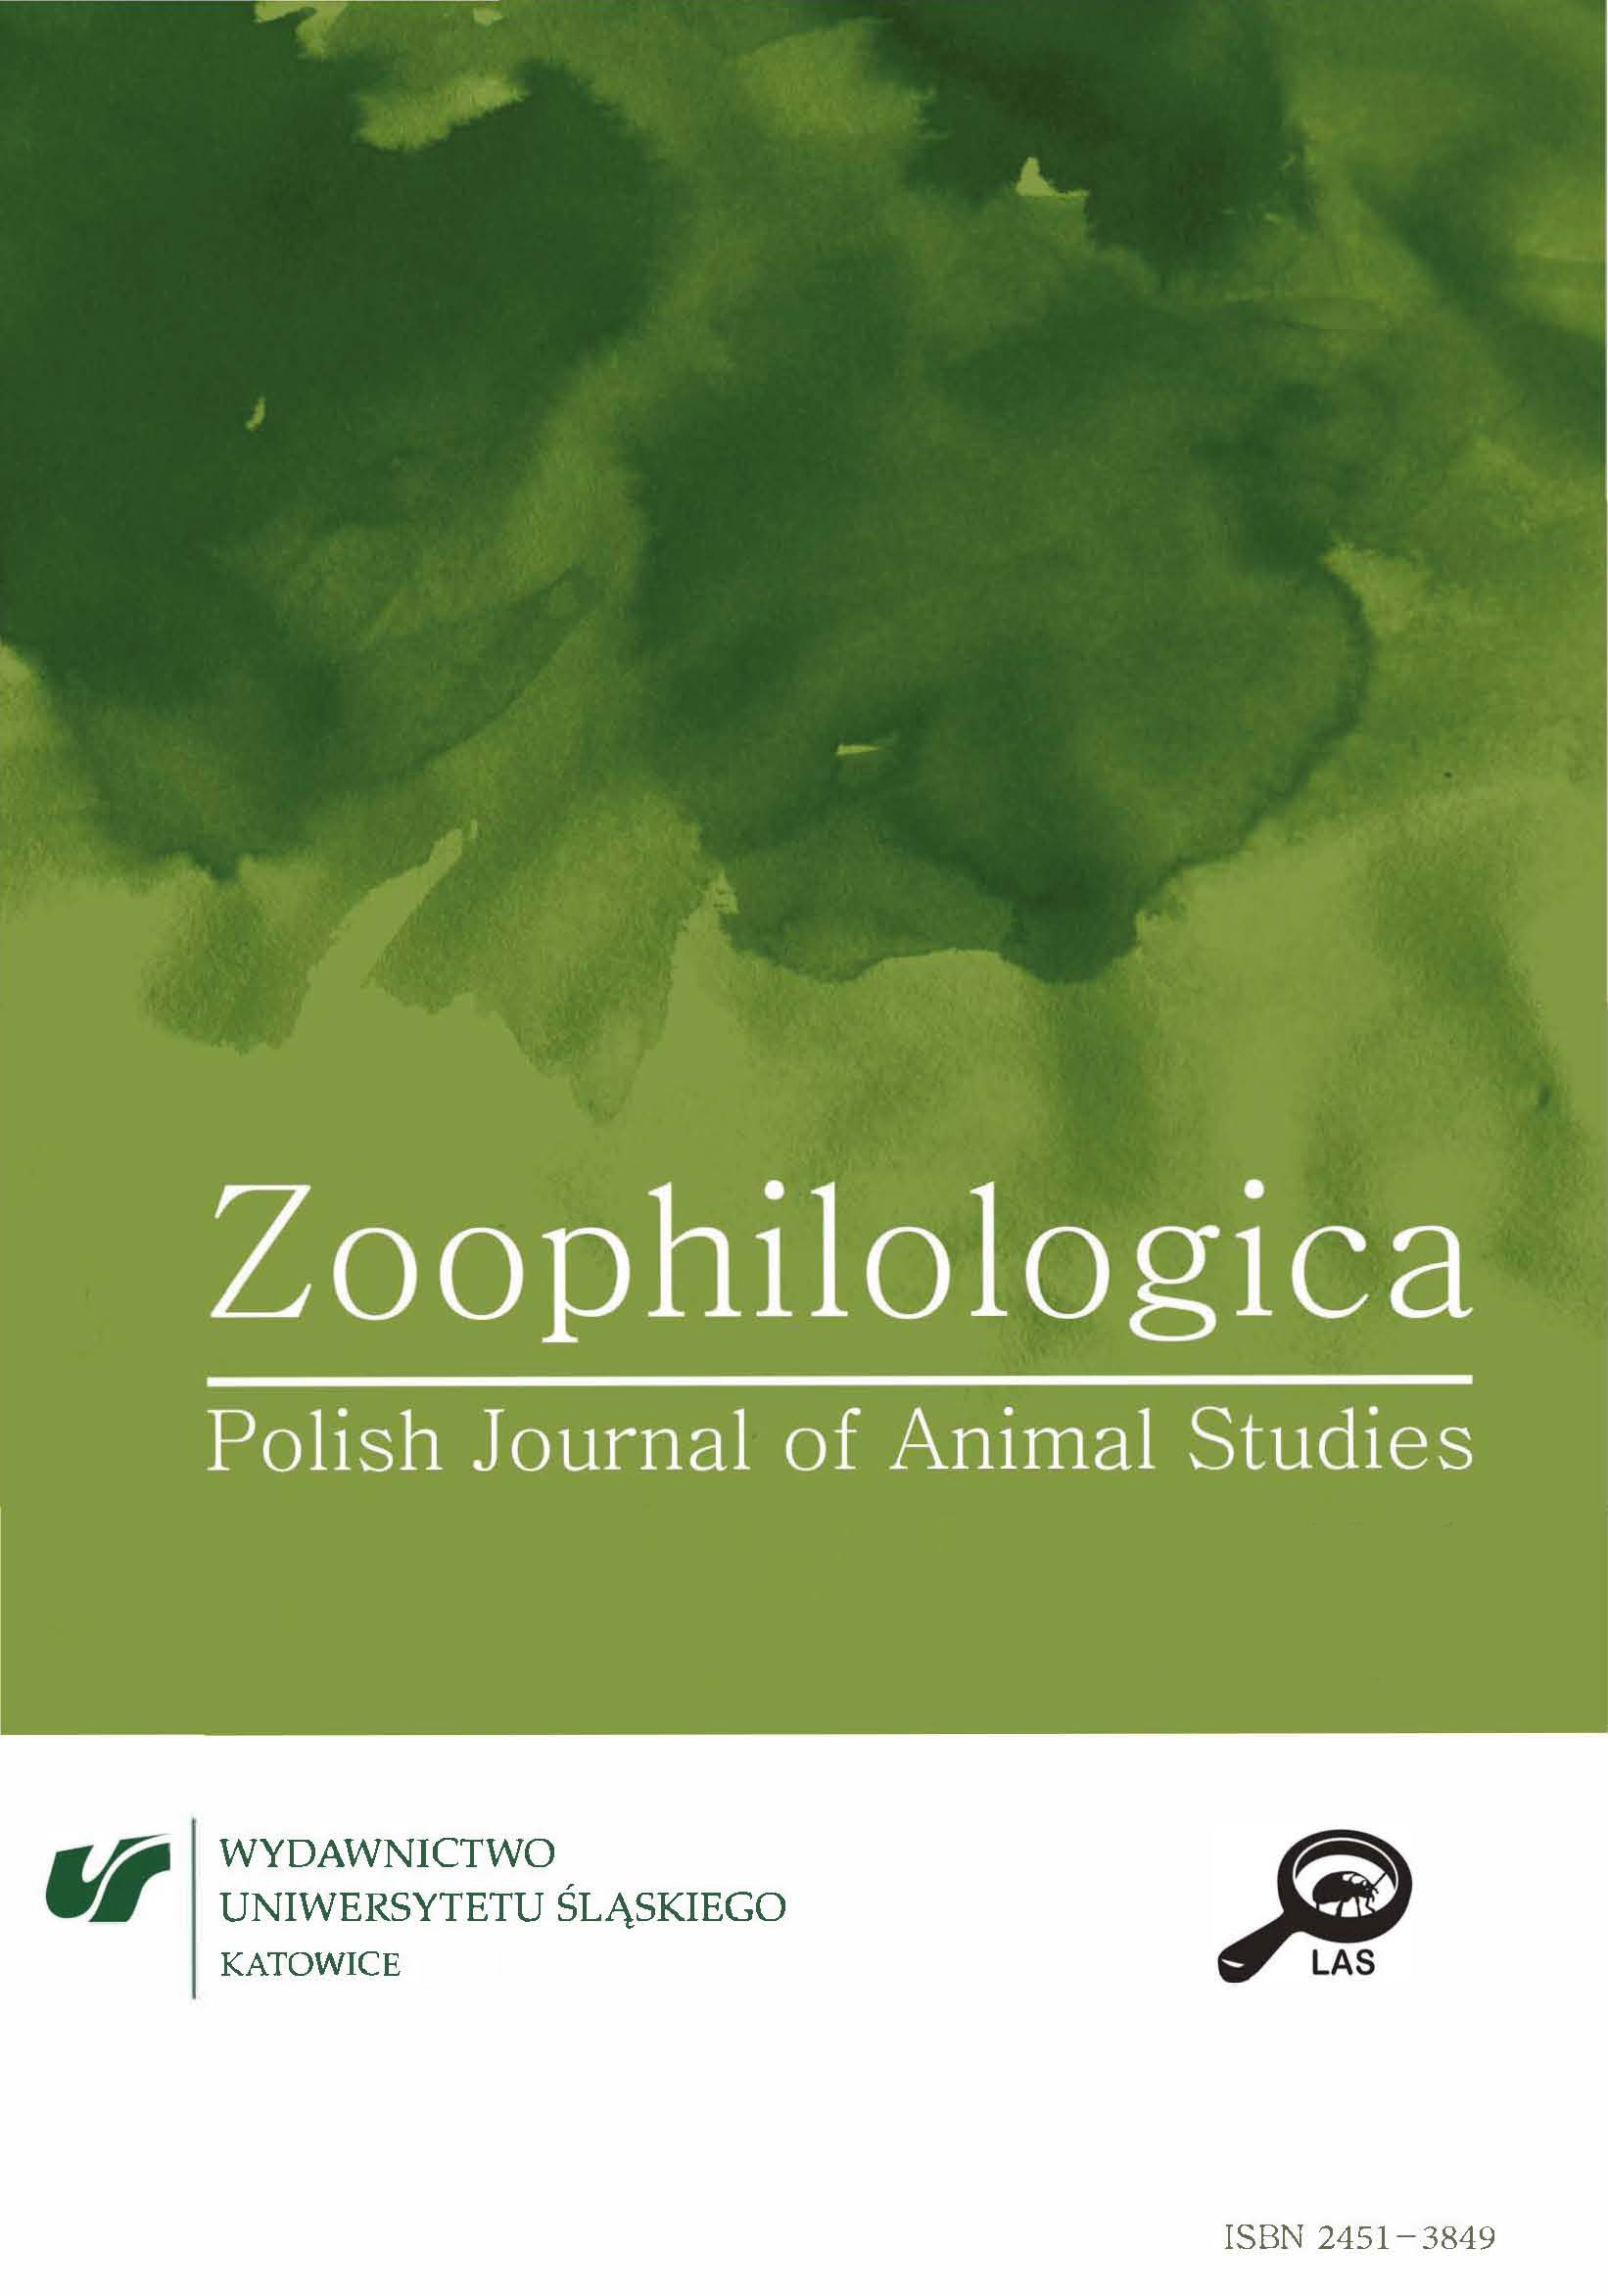 ZOOPHILOLOGICA. Polish Journal of Animal Studies Cover Image